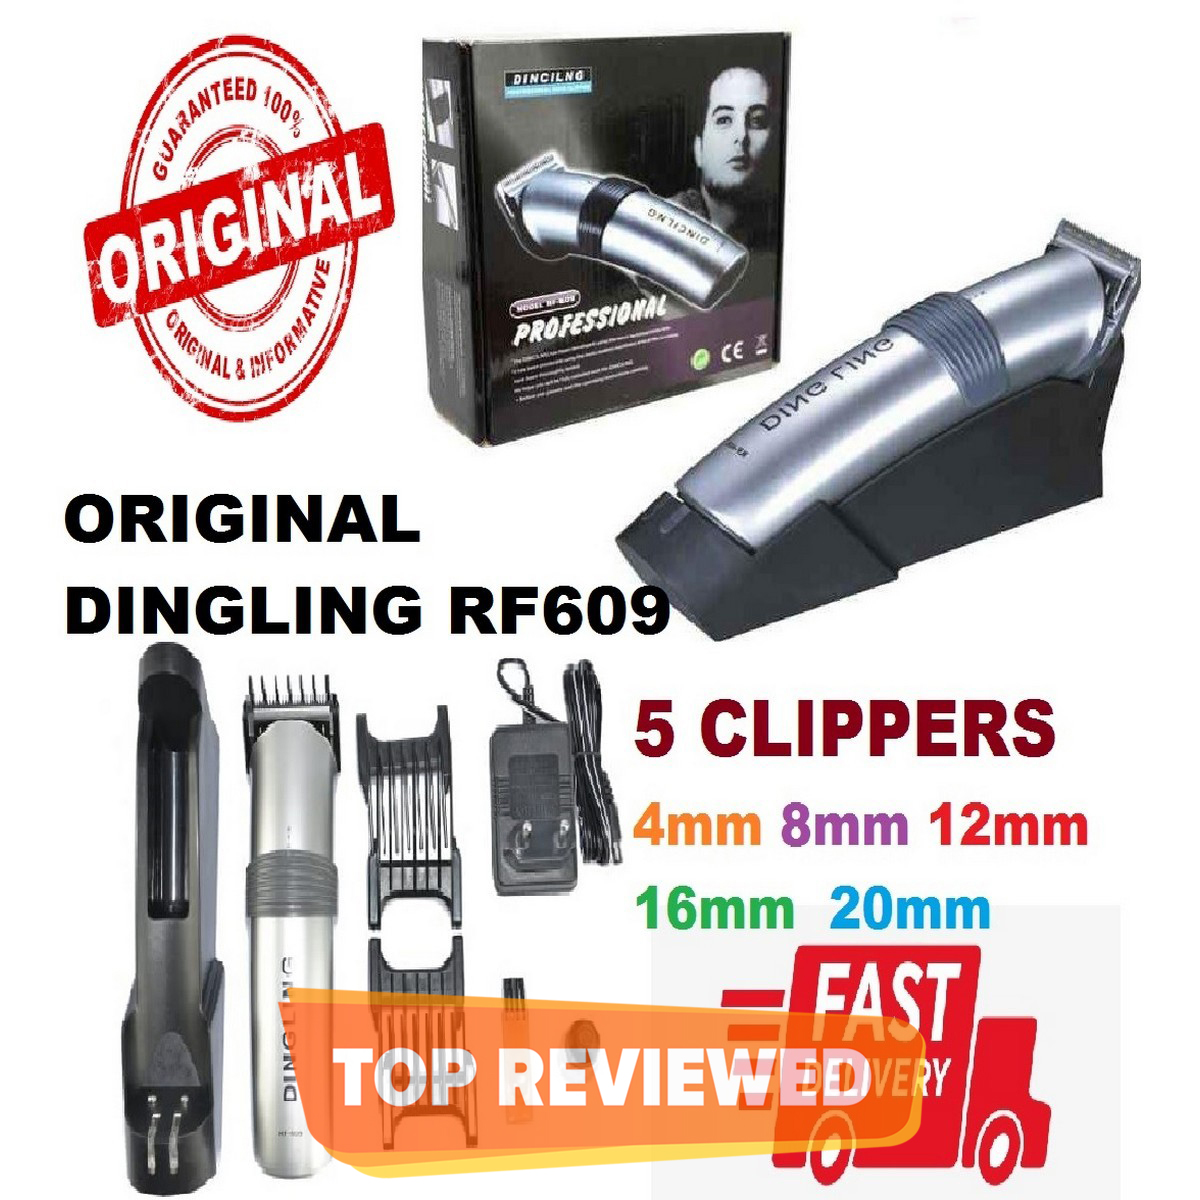 Original Dingling rf 609 rechargeable hair clipper with charge base 8 hours charge time DINGLING RF-609 Electric Hair Clipper Hairdressing Trimmer Rechargeable Cutting Machine Beard Styling RF 609 dingling machine, dingling ,dingling rf 609